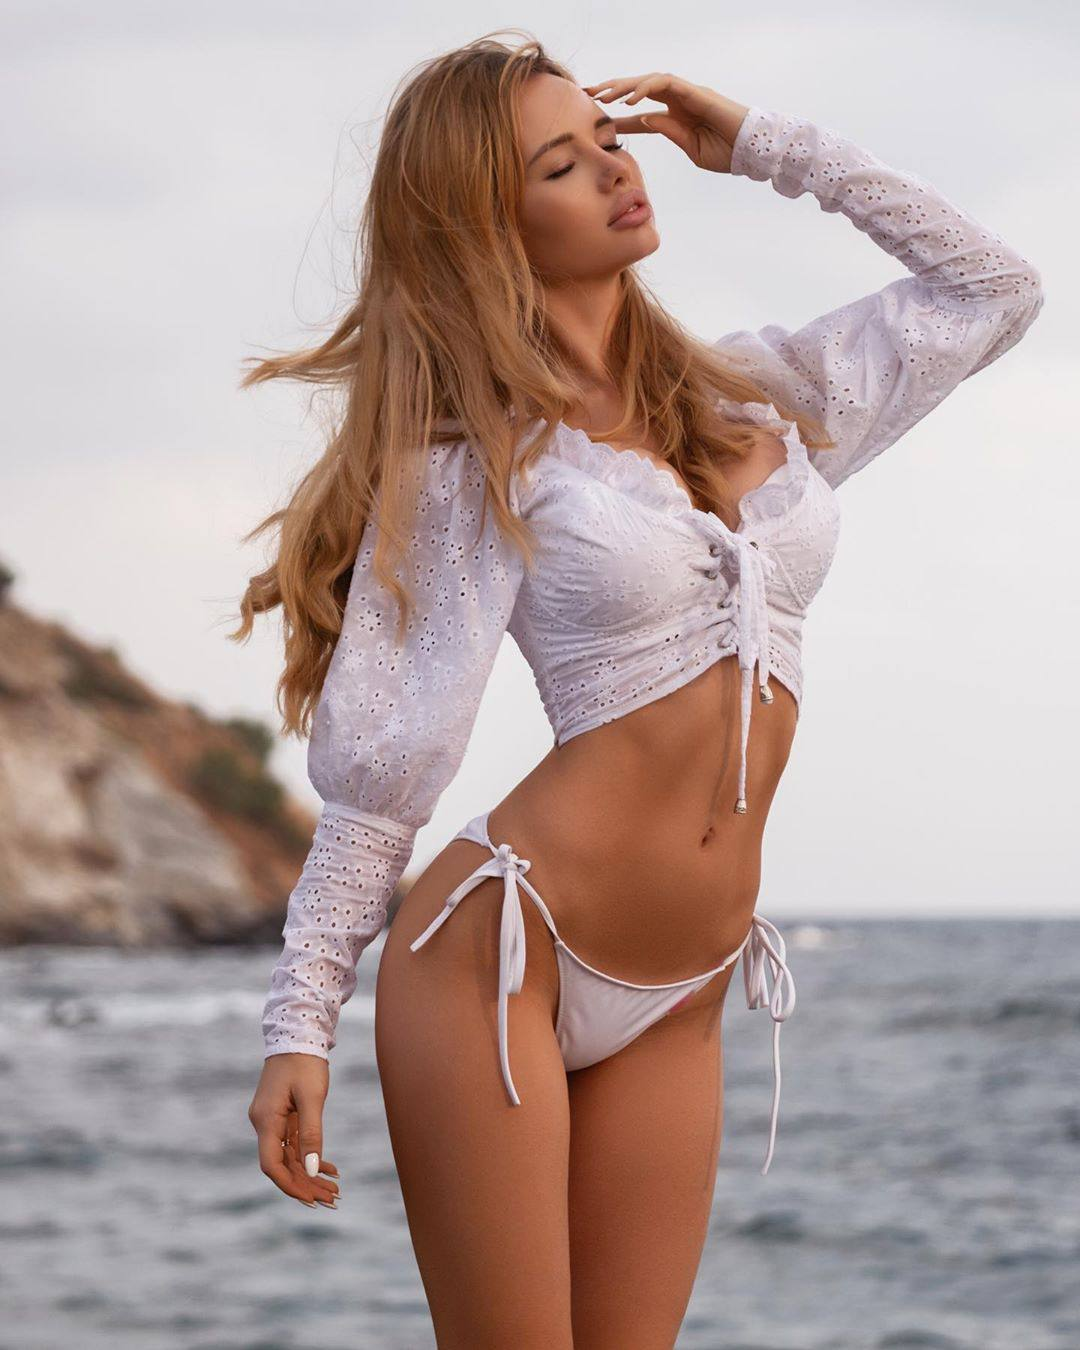 Olya Abramovich – Hot Boobs In Topless Beach Photoshoot (nsfw) 0047